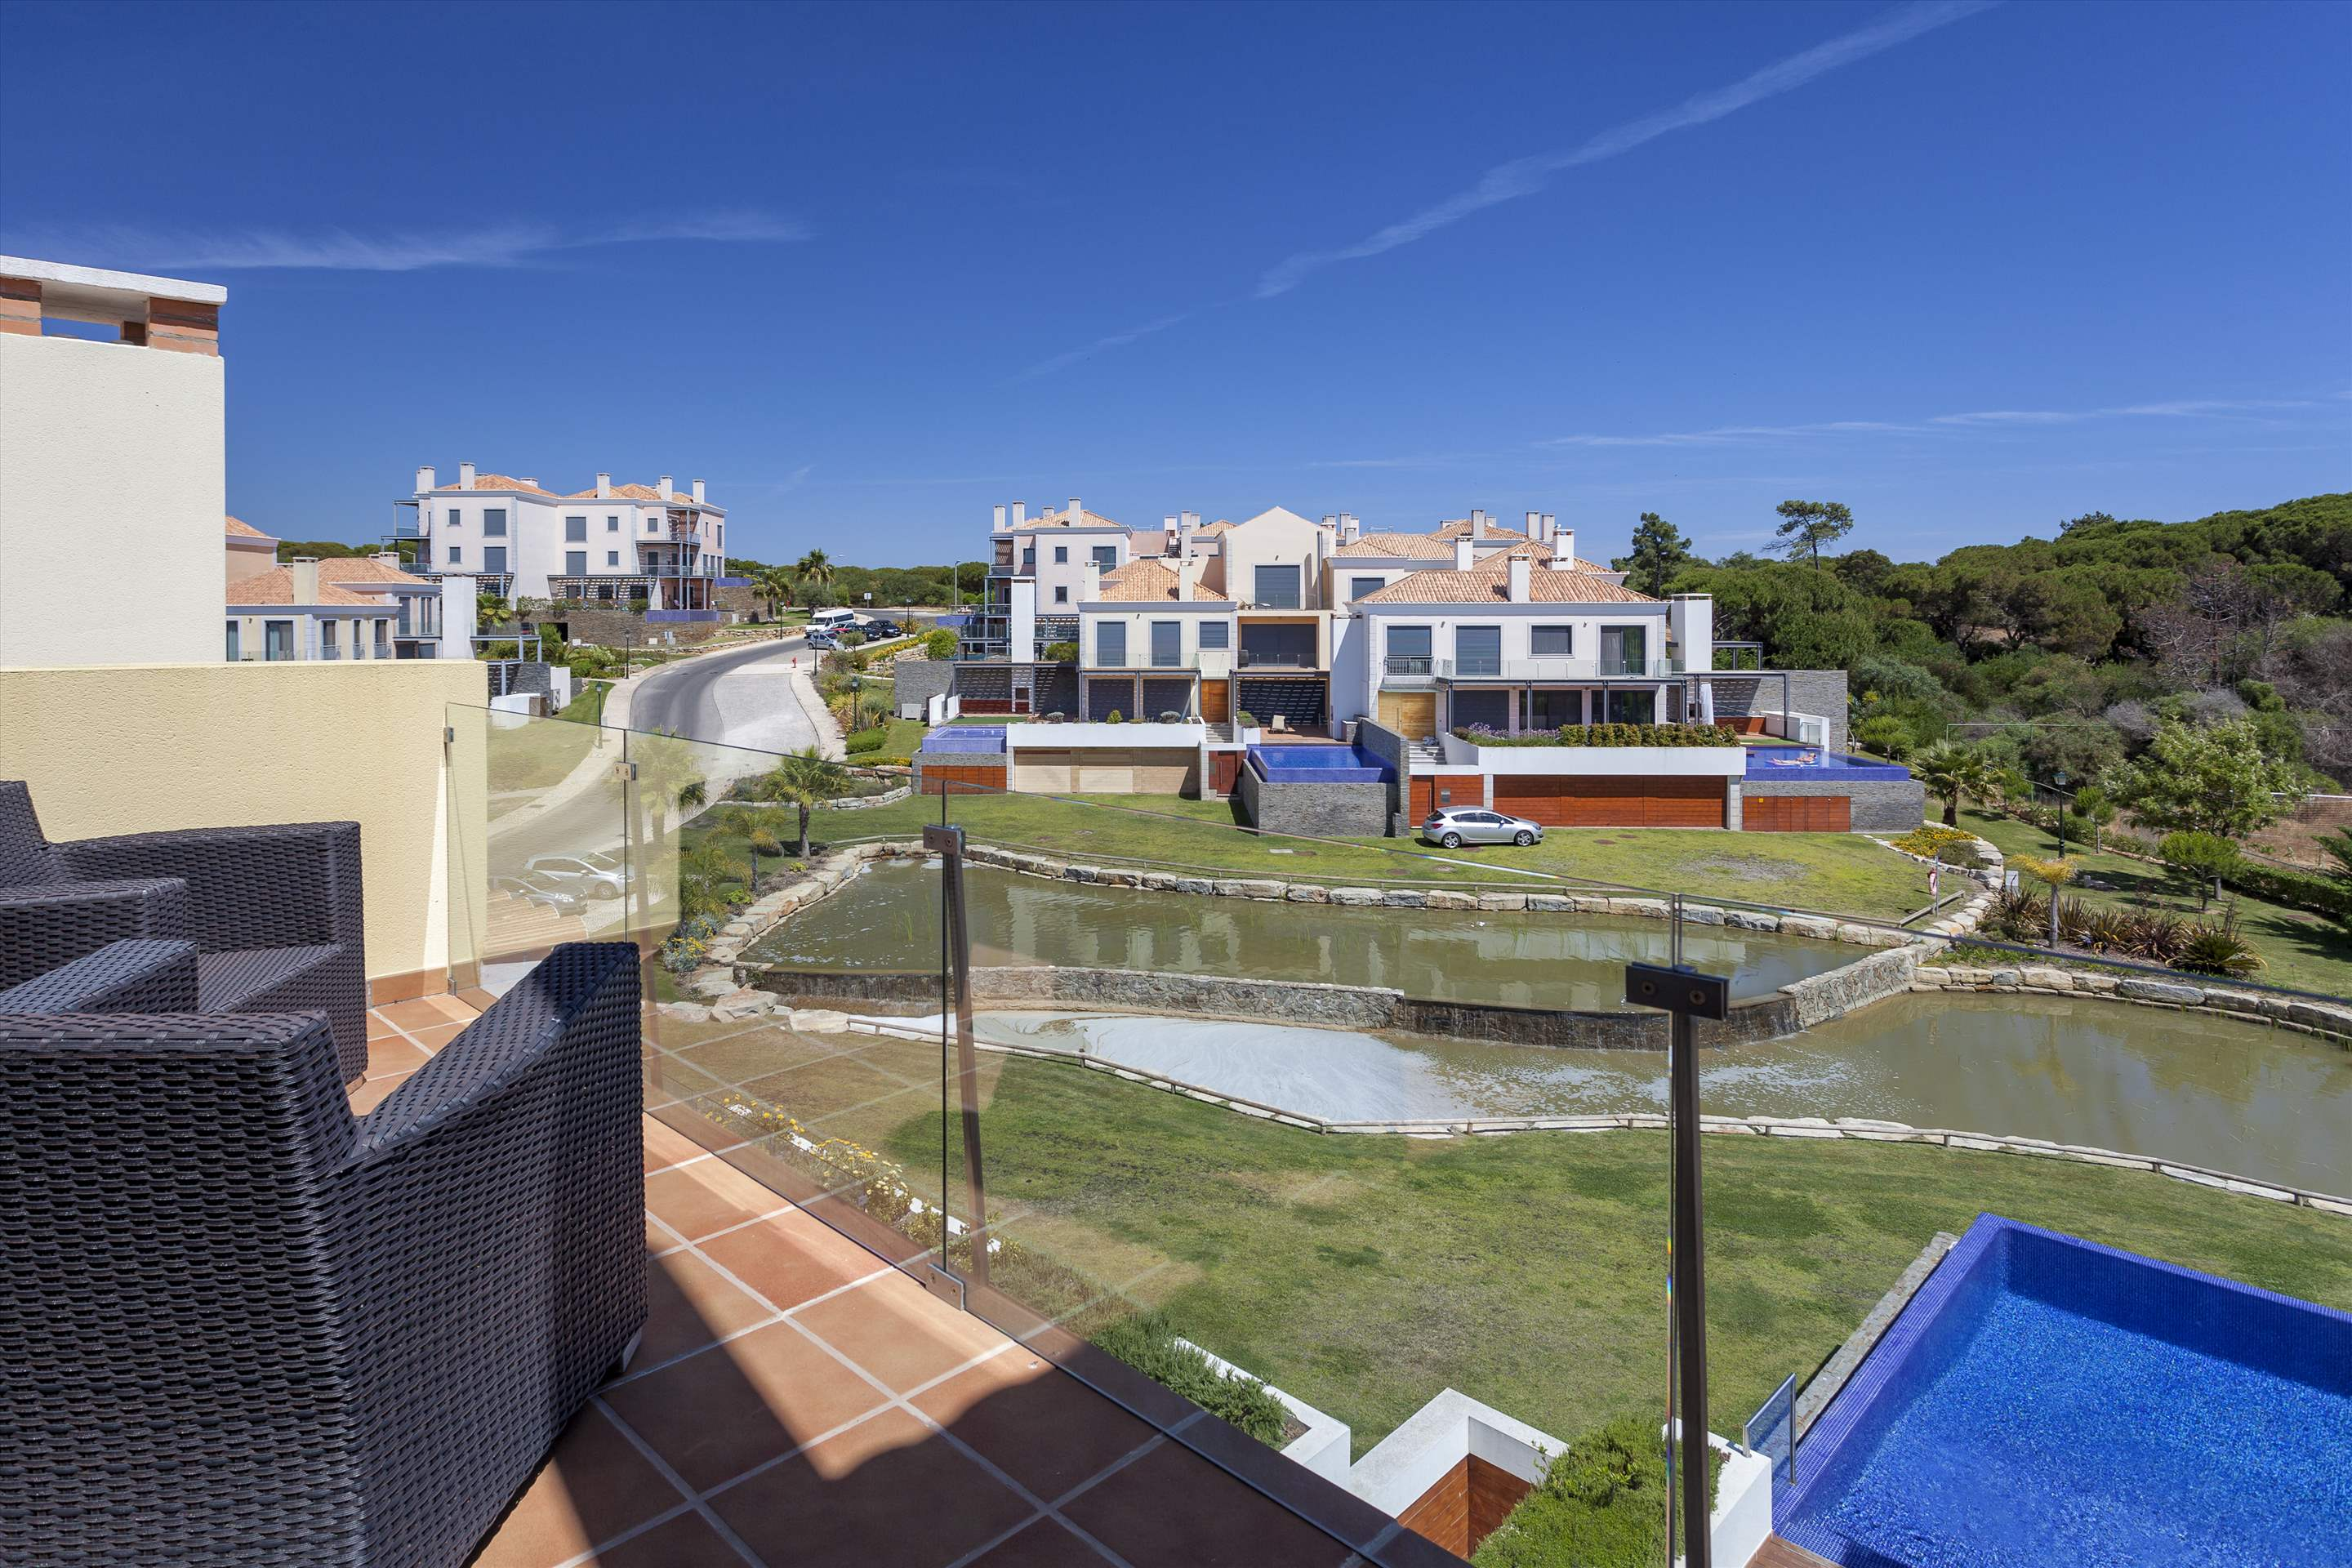 Villa Emily, 3 bedroom villa in Vale do Lobo, Algarve Photo #13